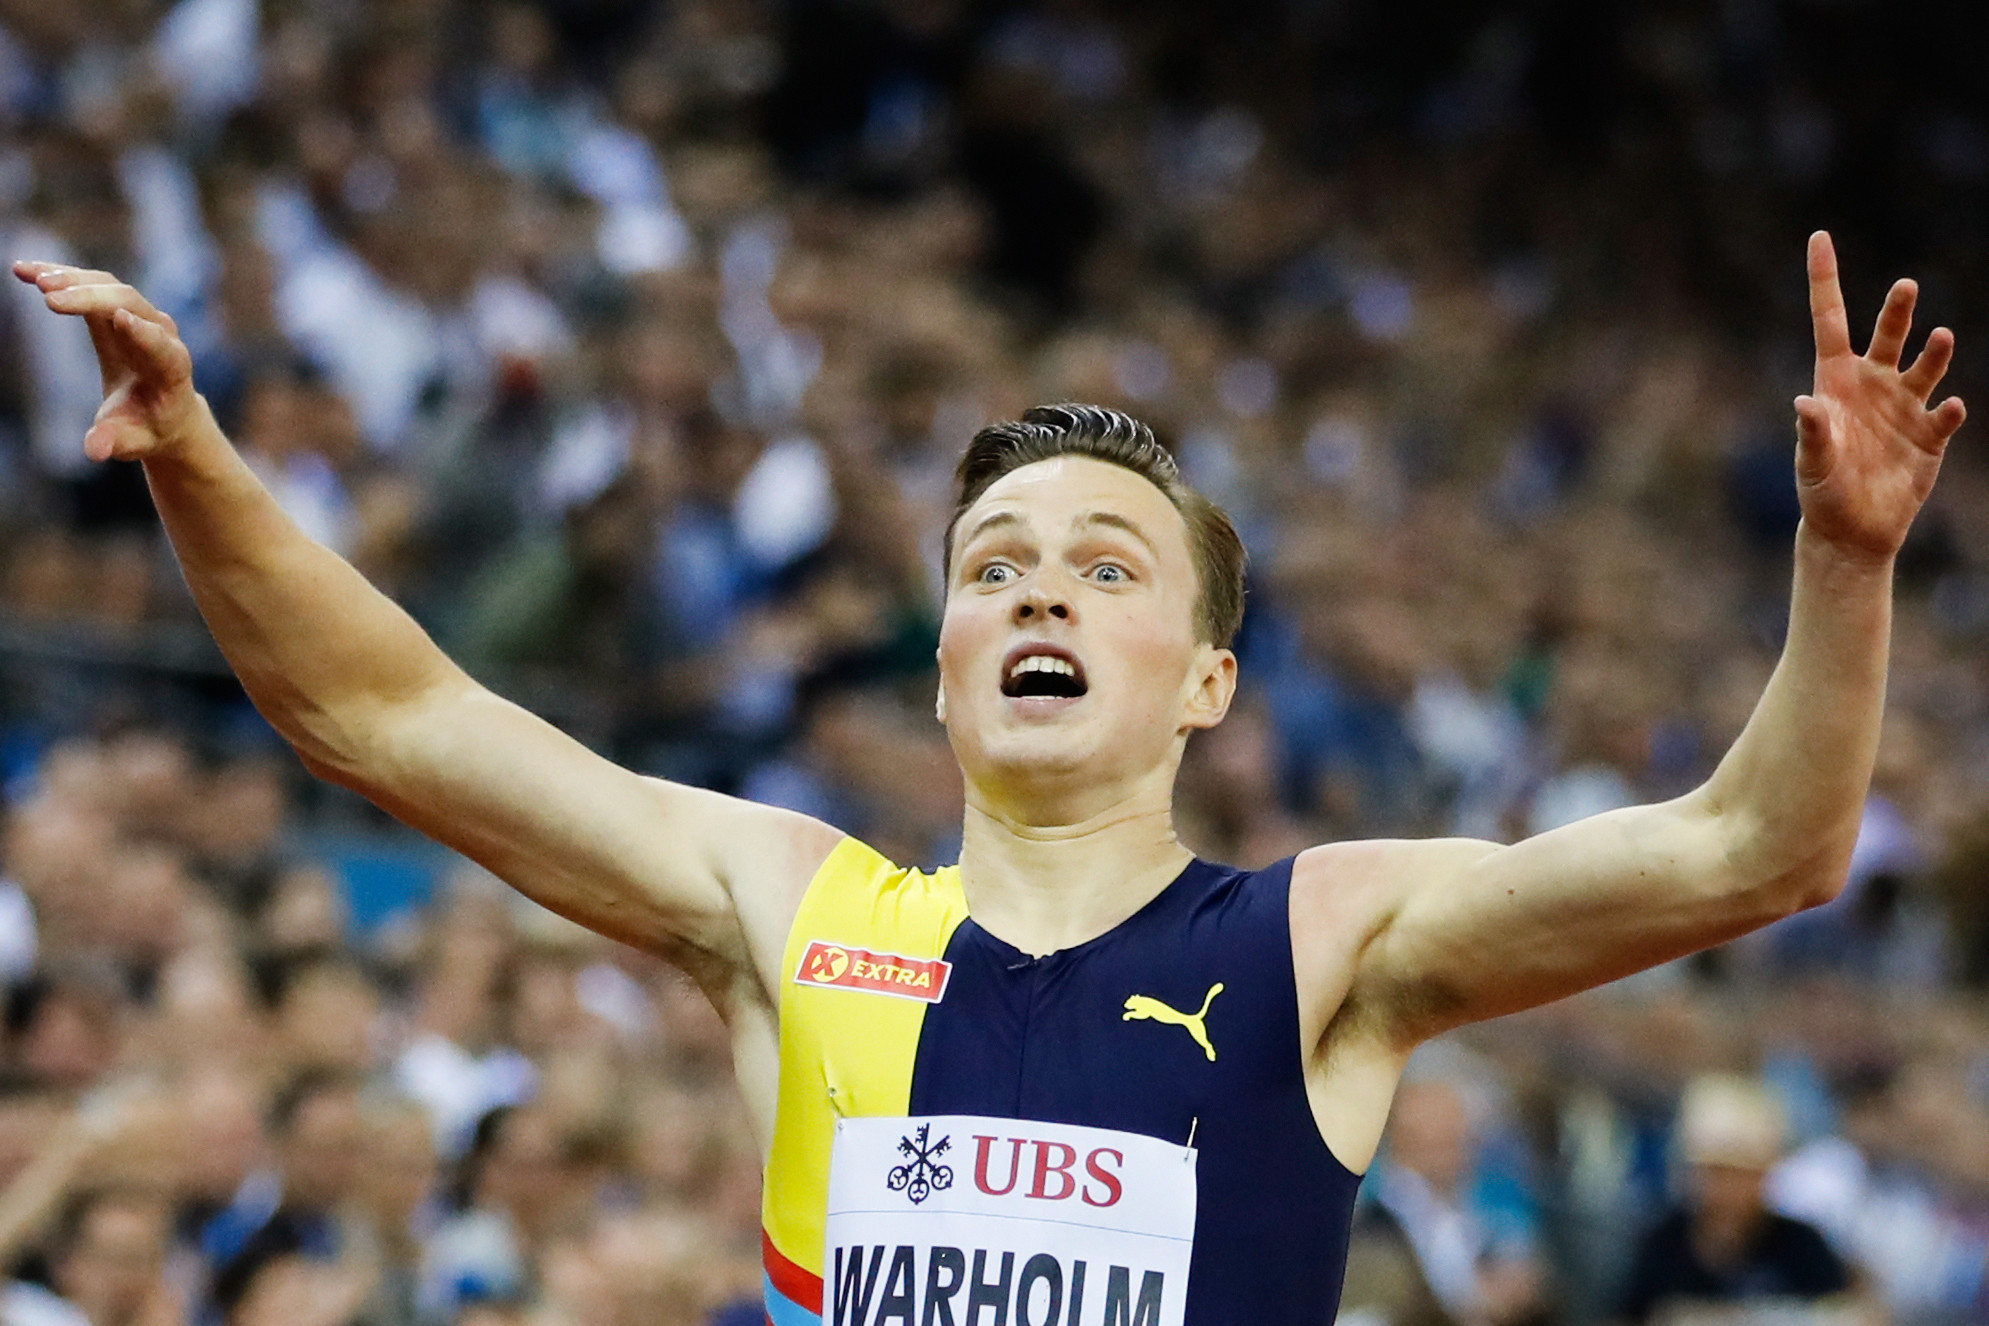 Warholm and Benjamin light up Zurich Diamond League final